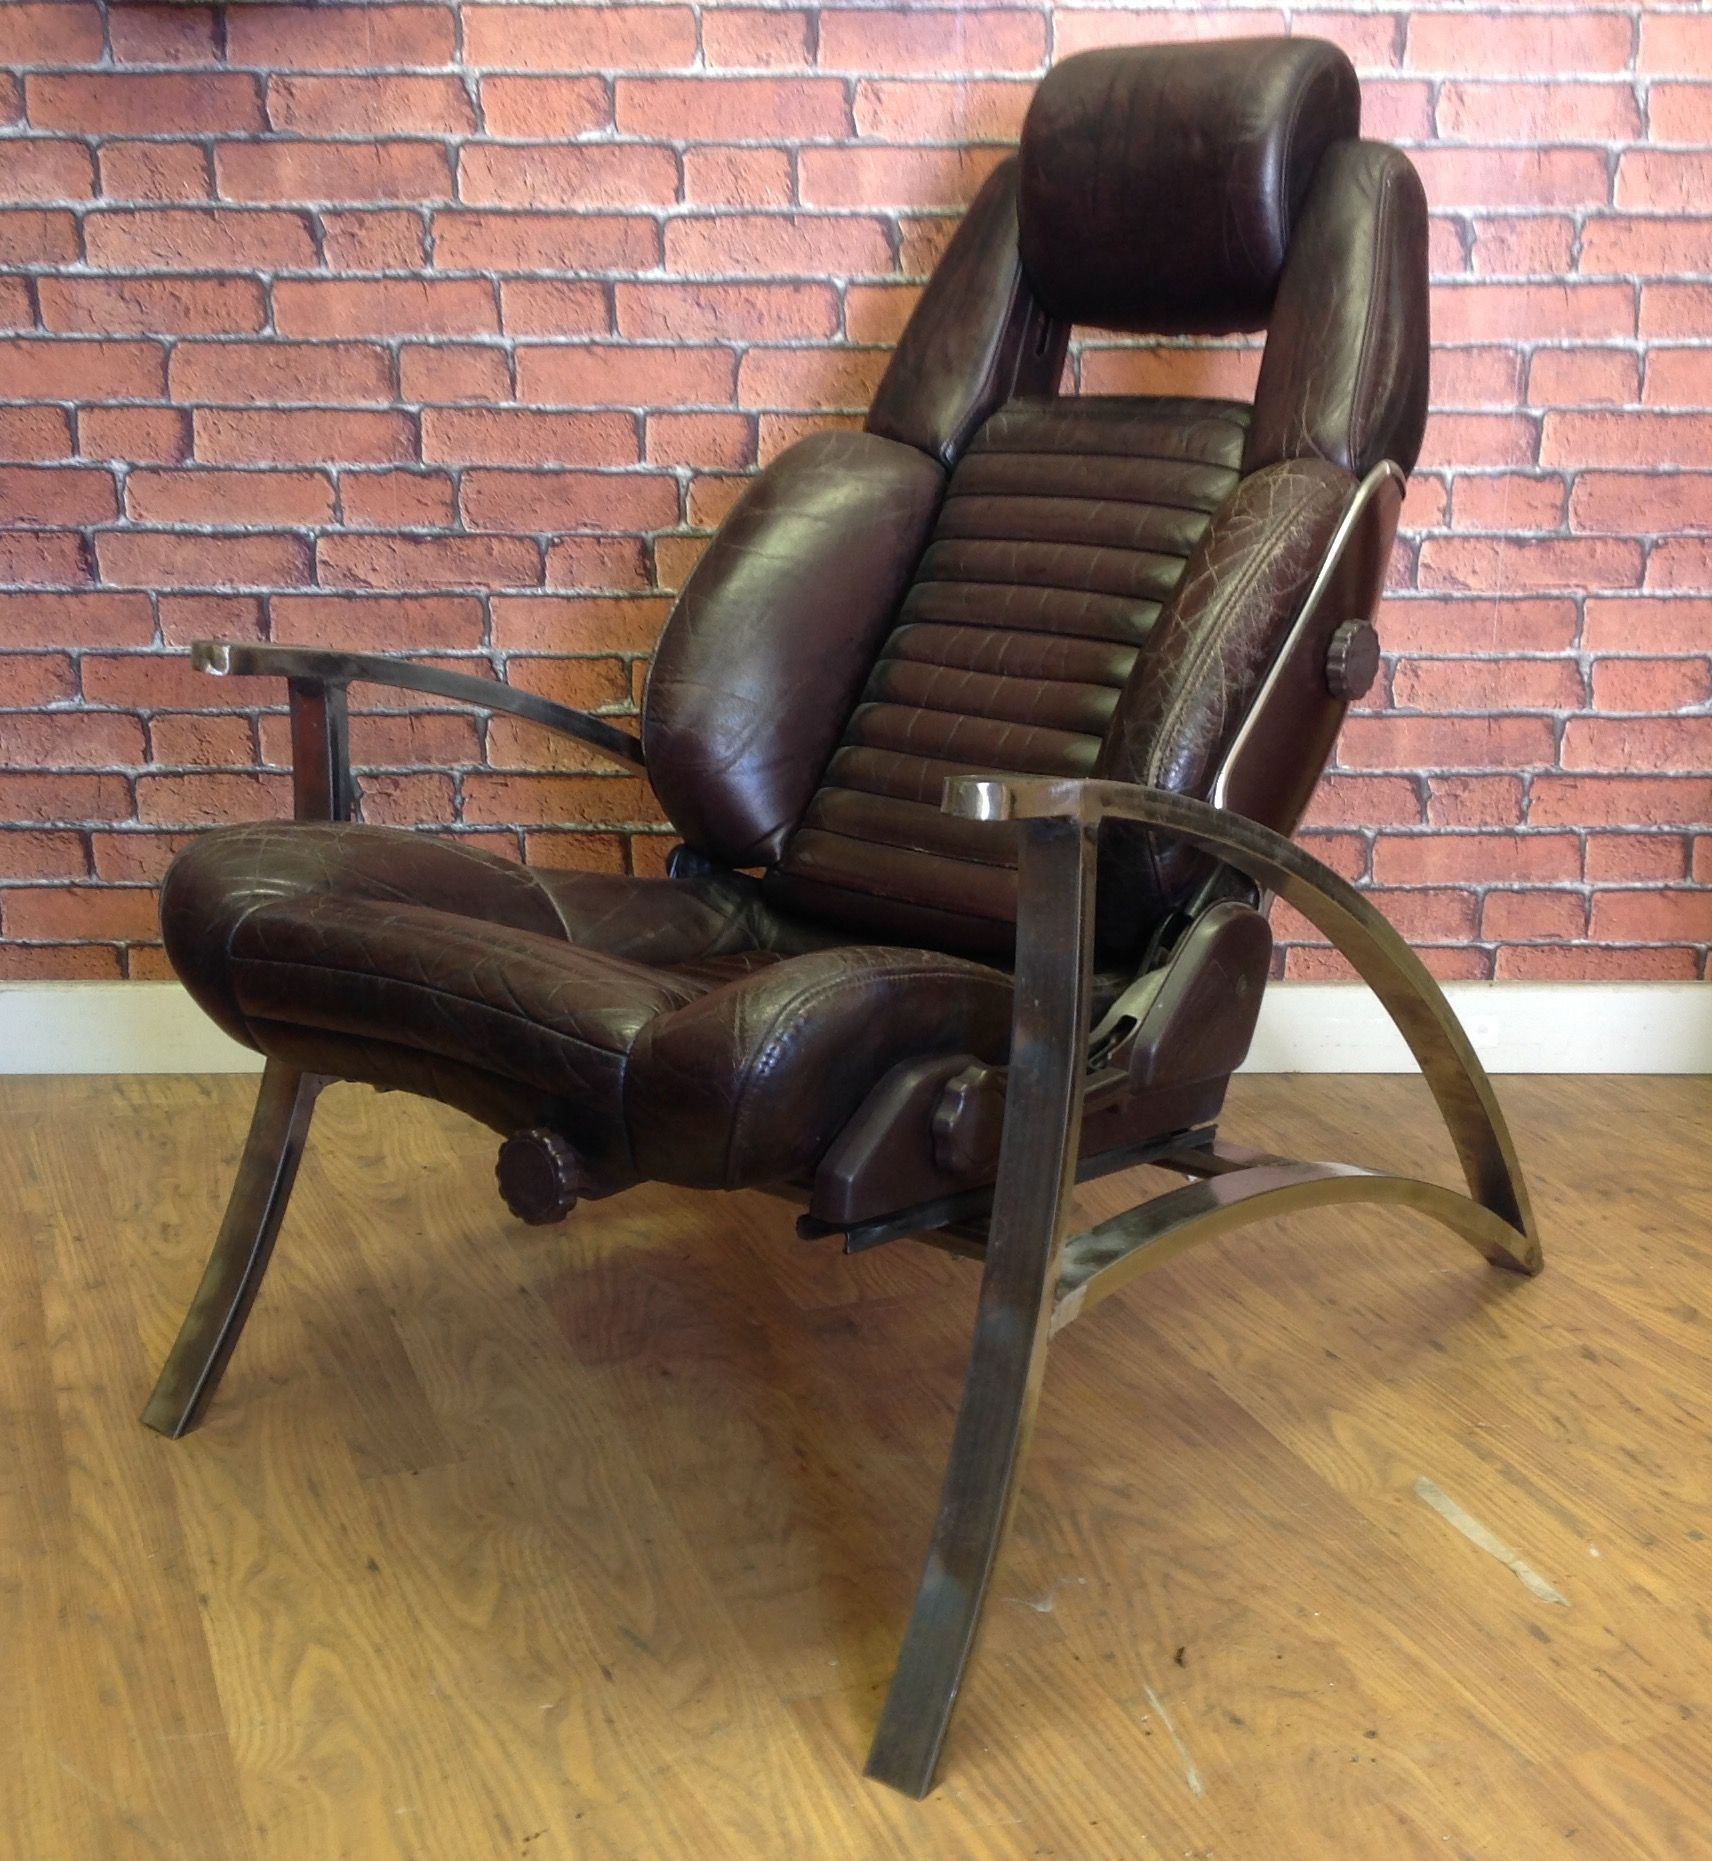 Deco influence curved frame Toyota car seat / chair  Car part